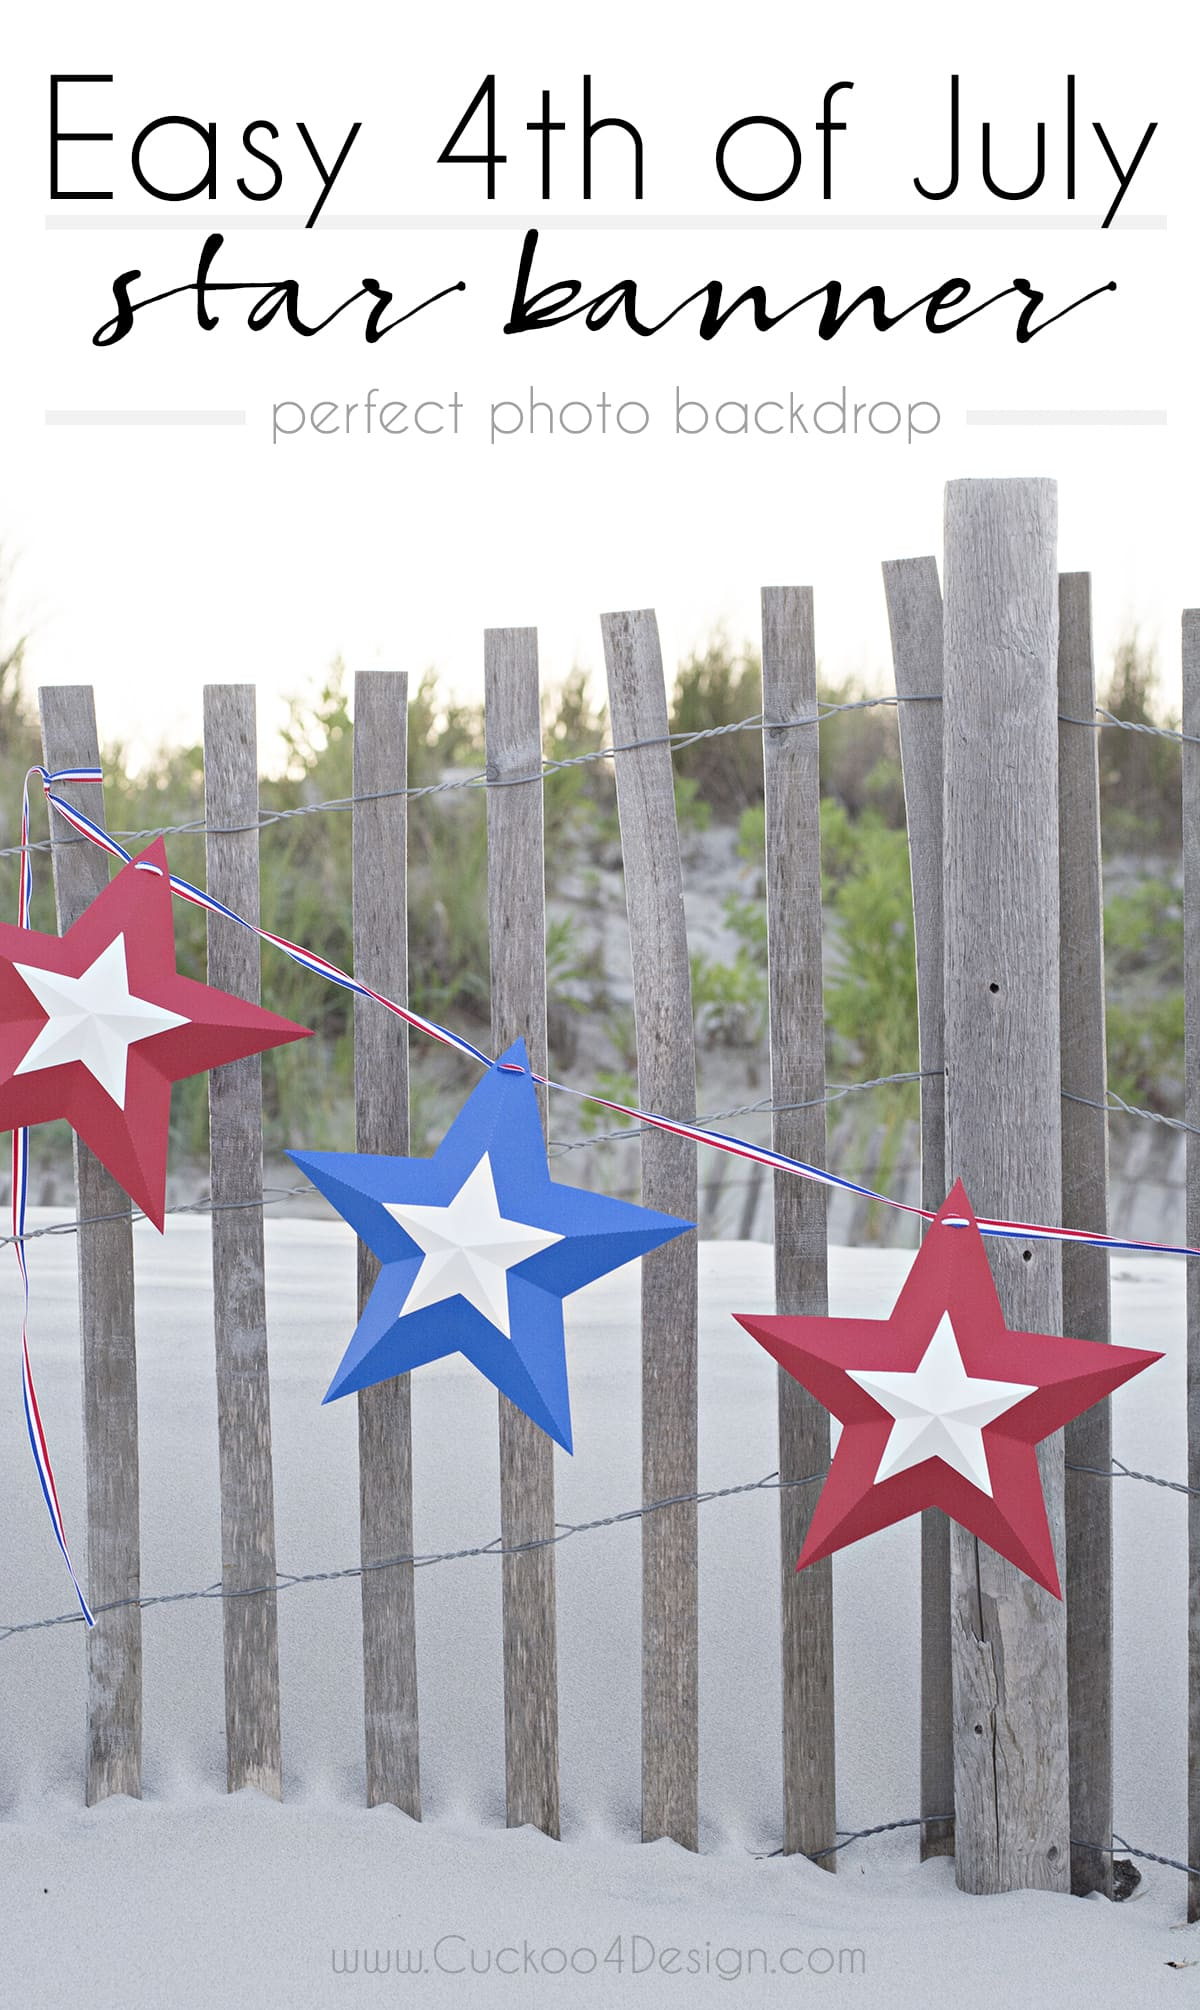 easy 4th of July star bunting photo backdrop